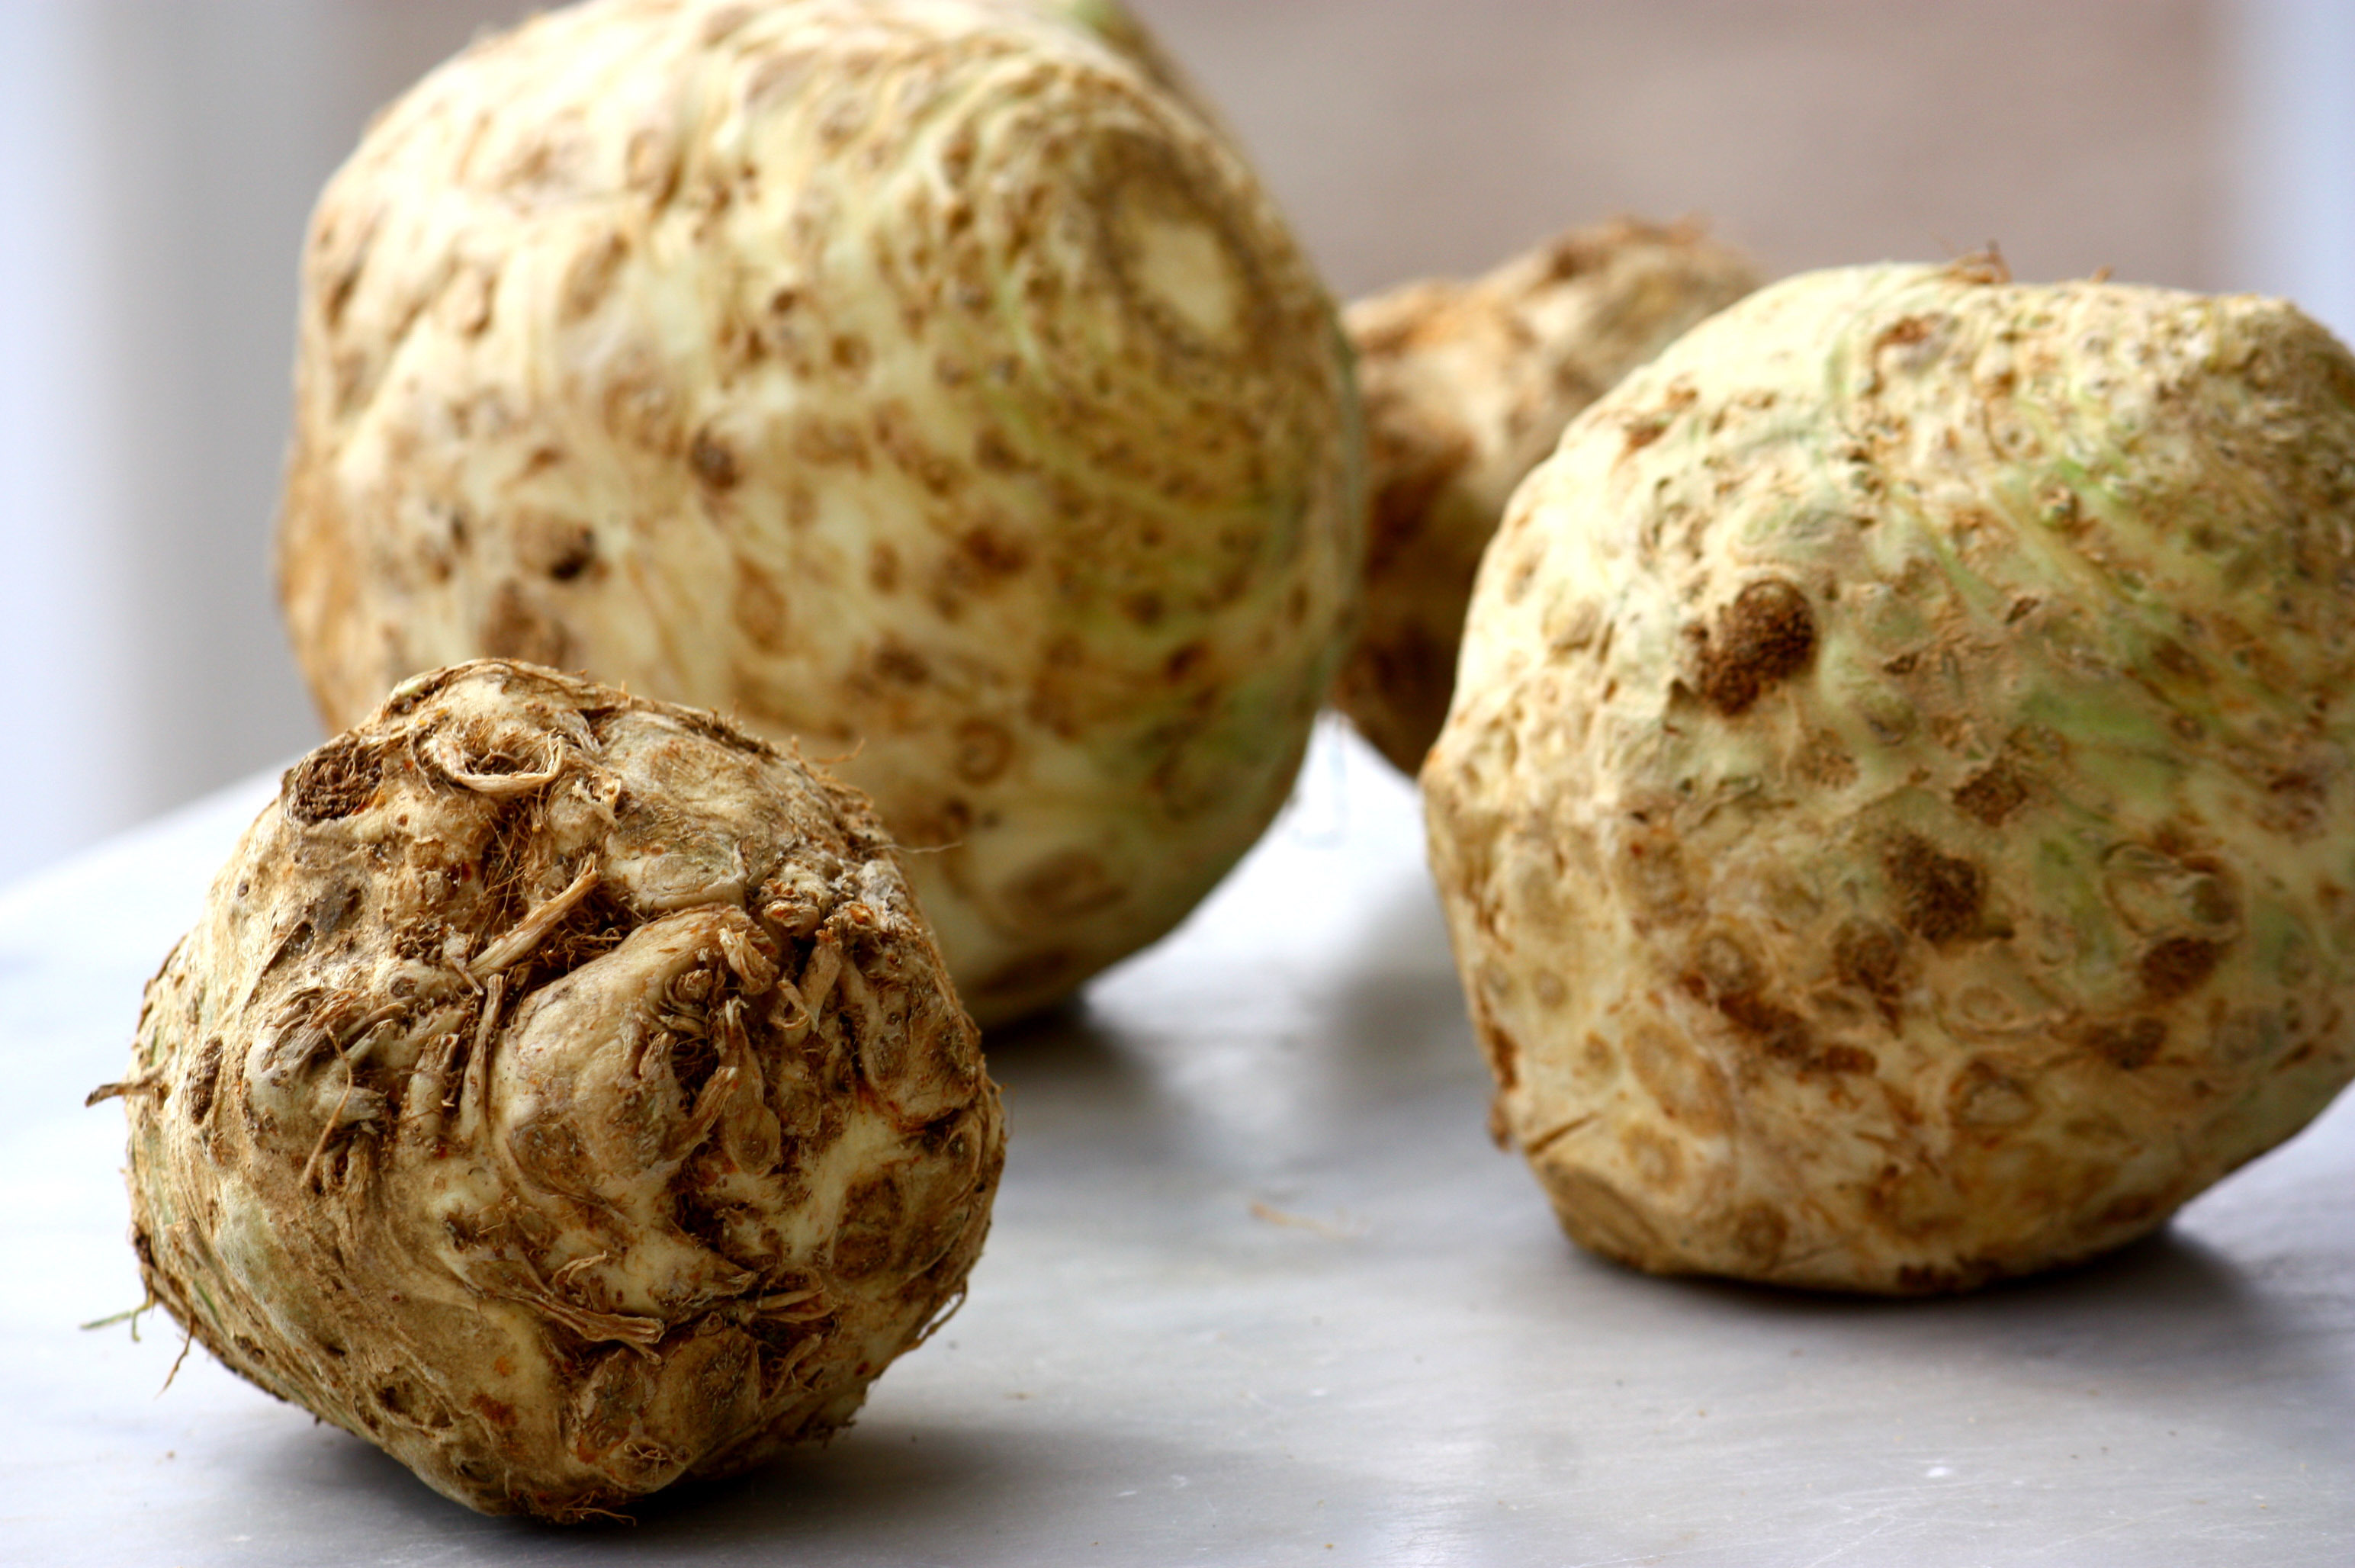 You Can't Judge A Celery Root By Its Looks : NPR